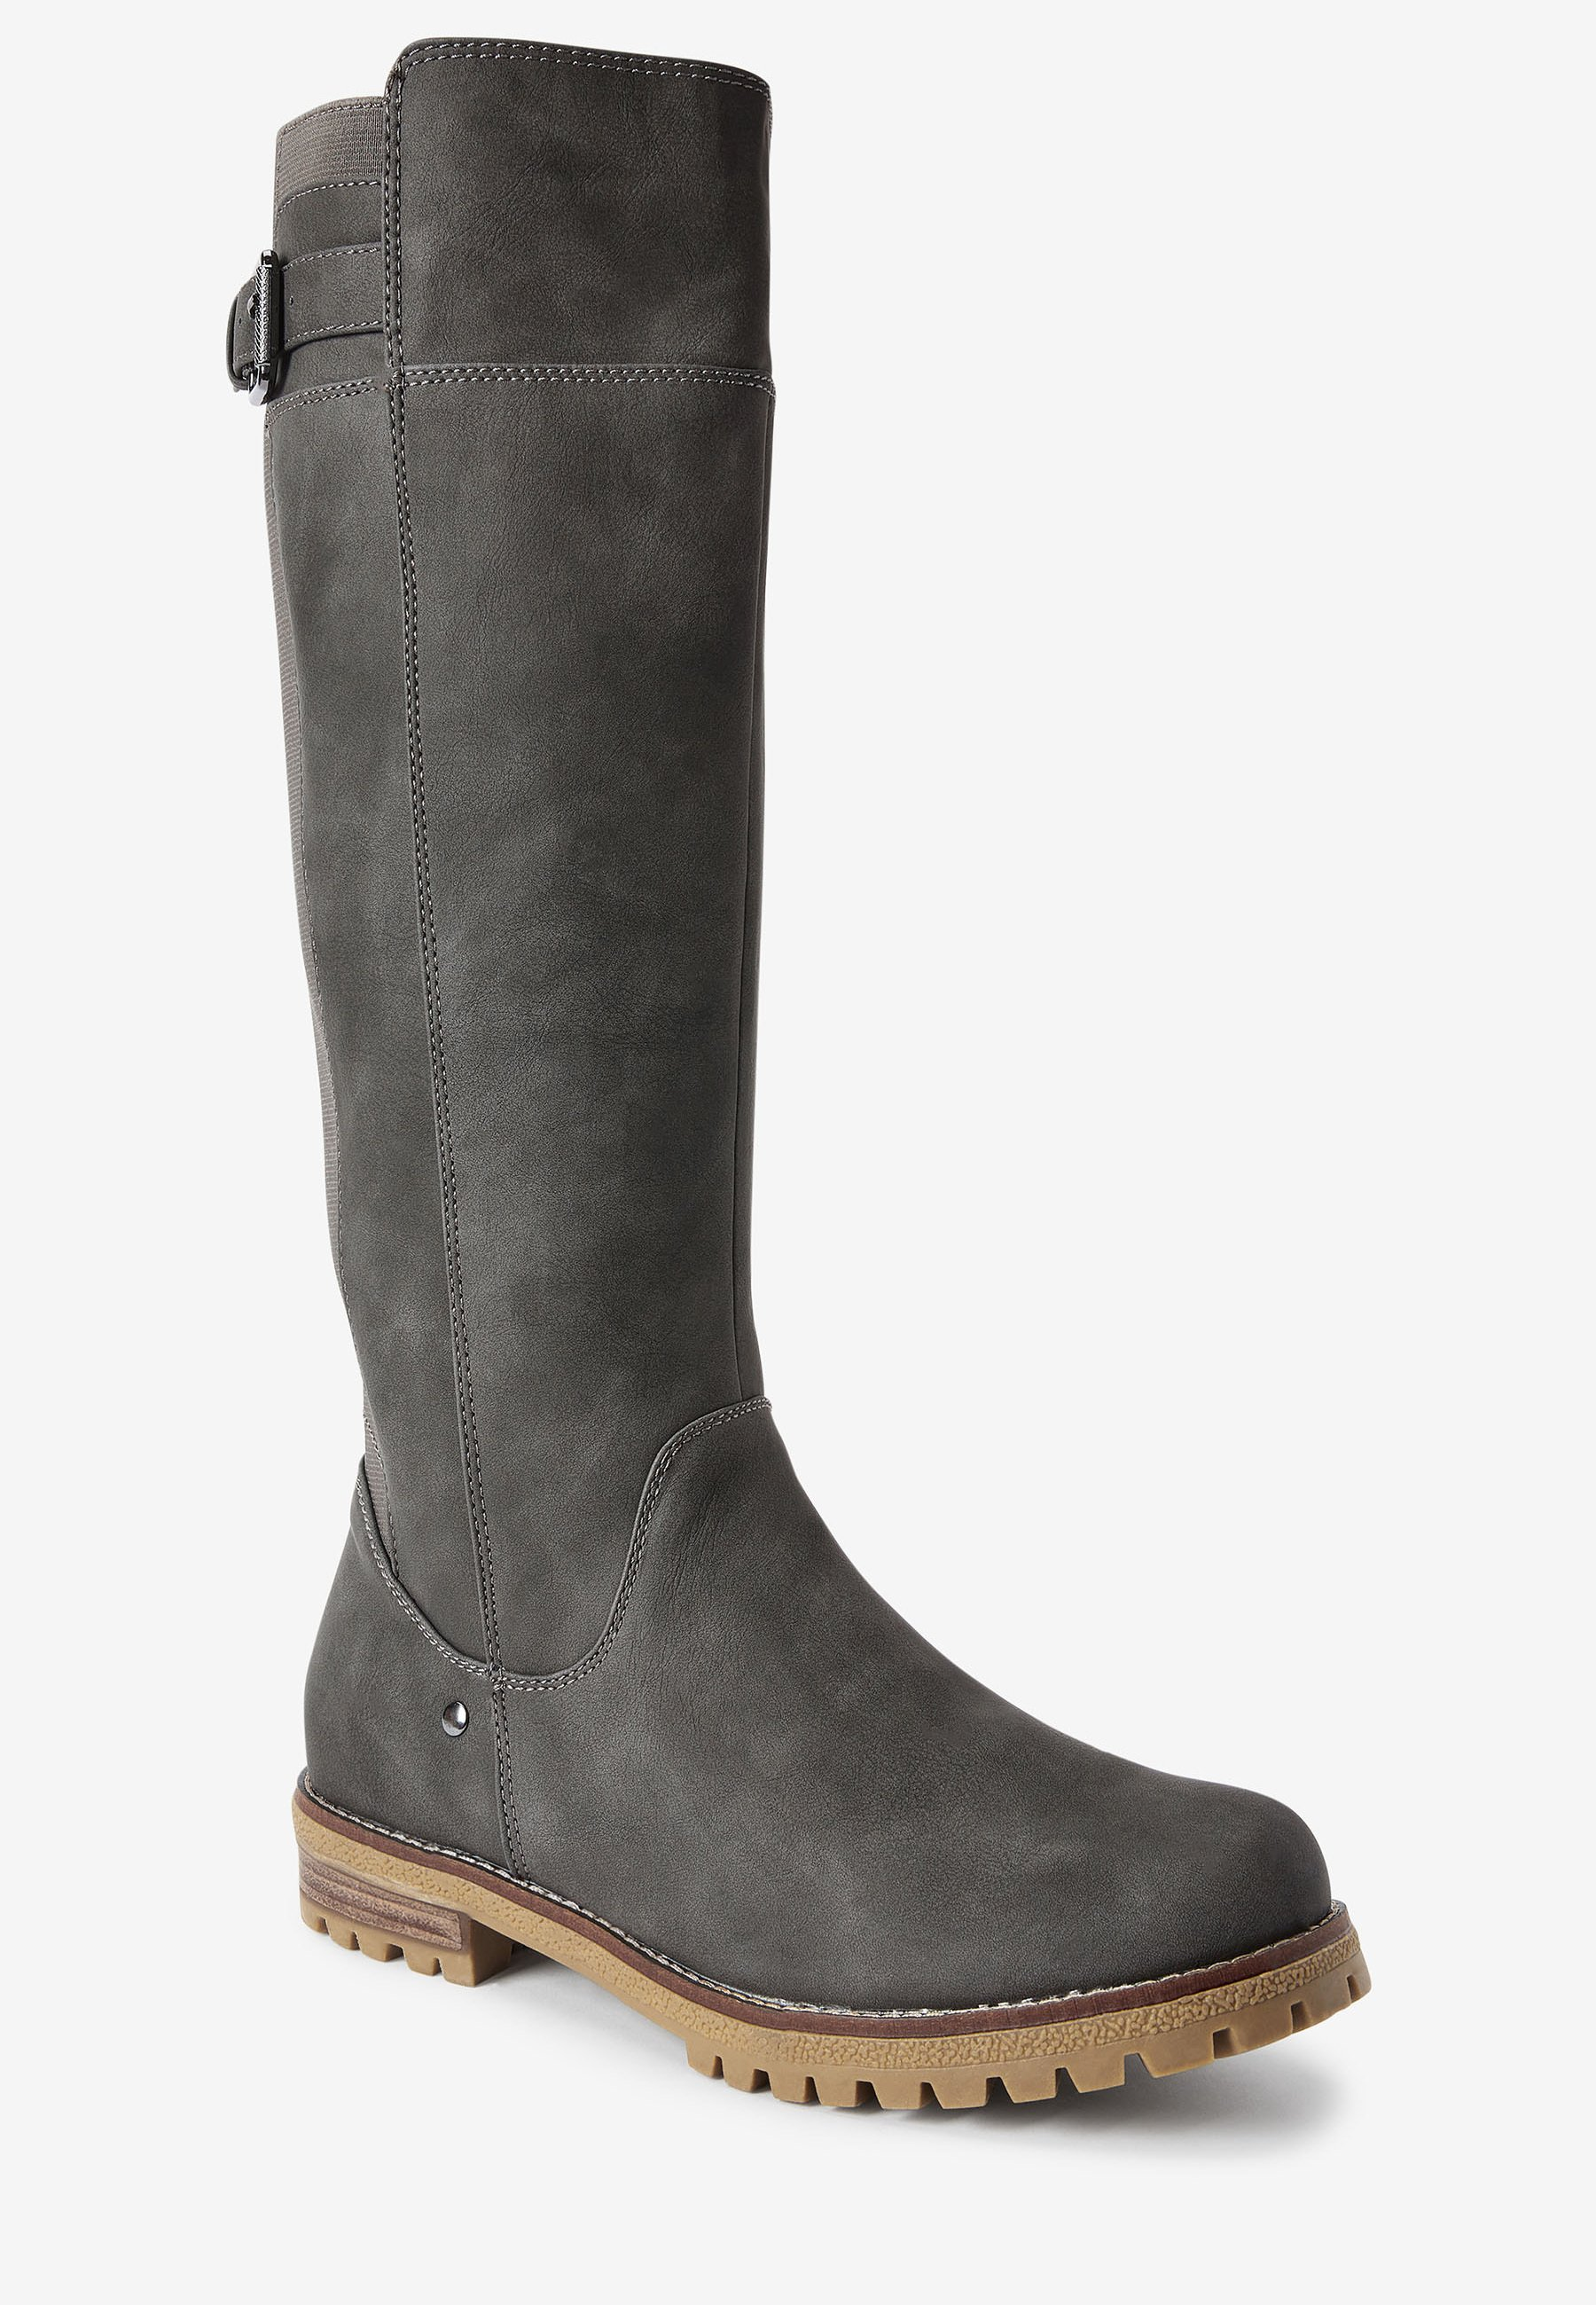 Next CHUNKY KNEE HIGH Stiefel brown/braun